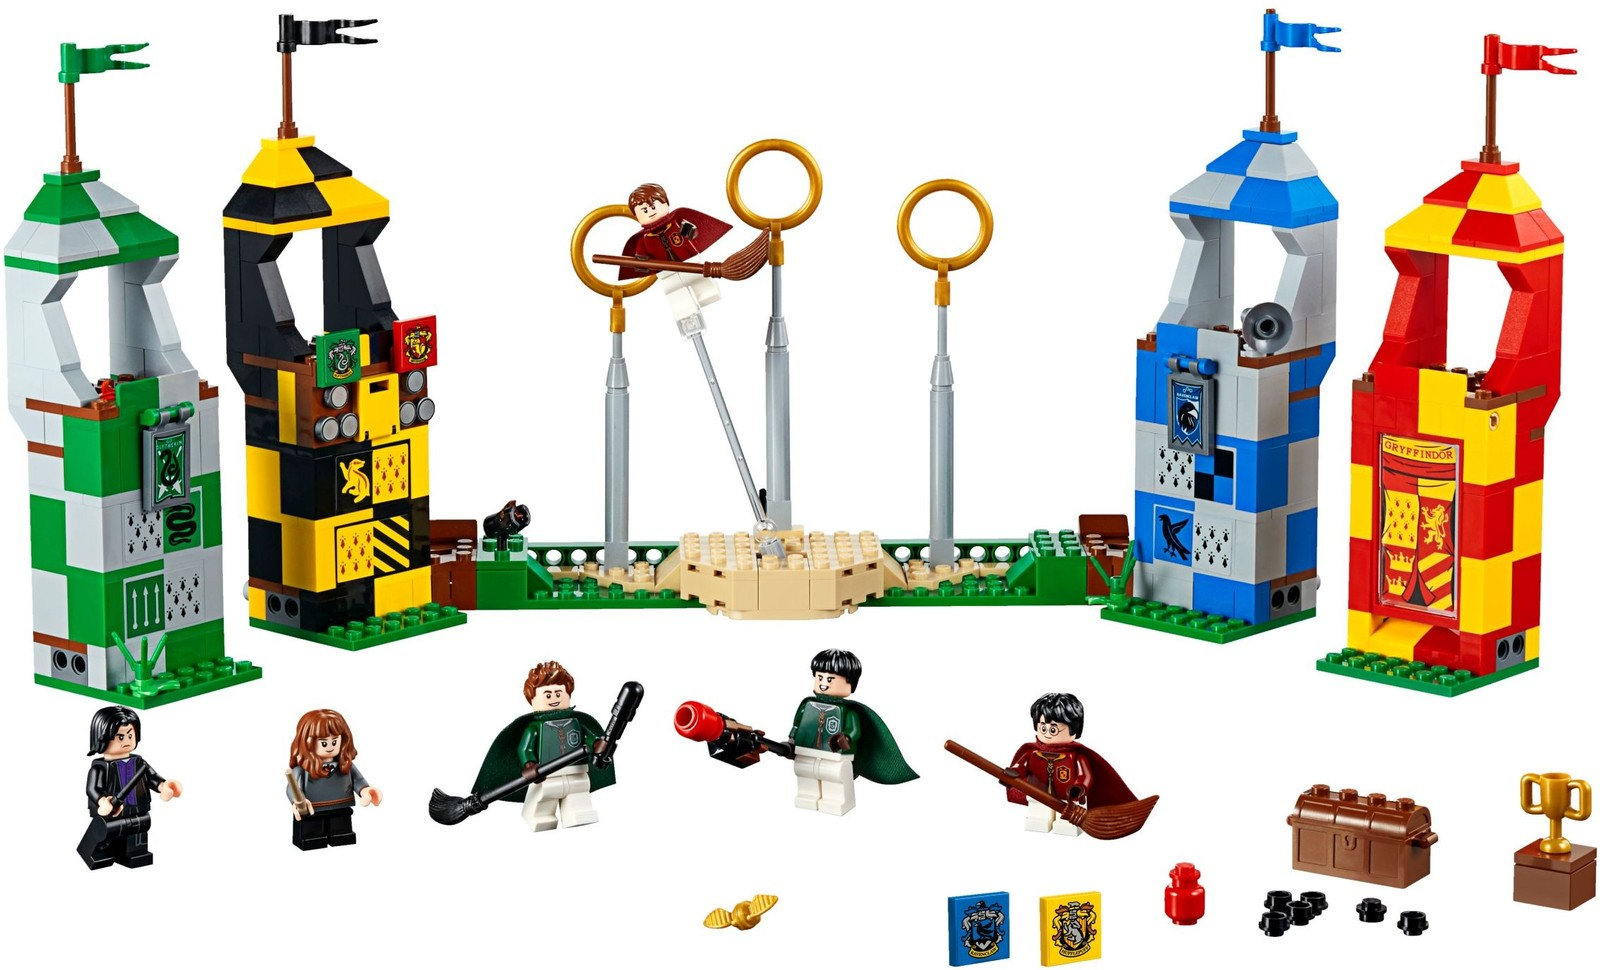 LEGO Harry Potter: Quidditch Match (75956) image